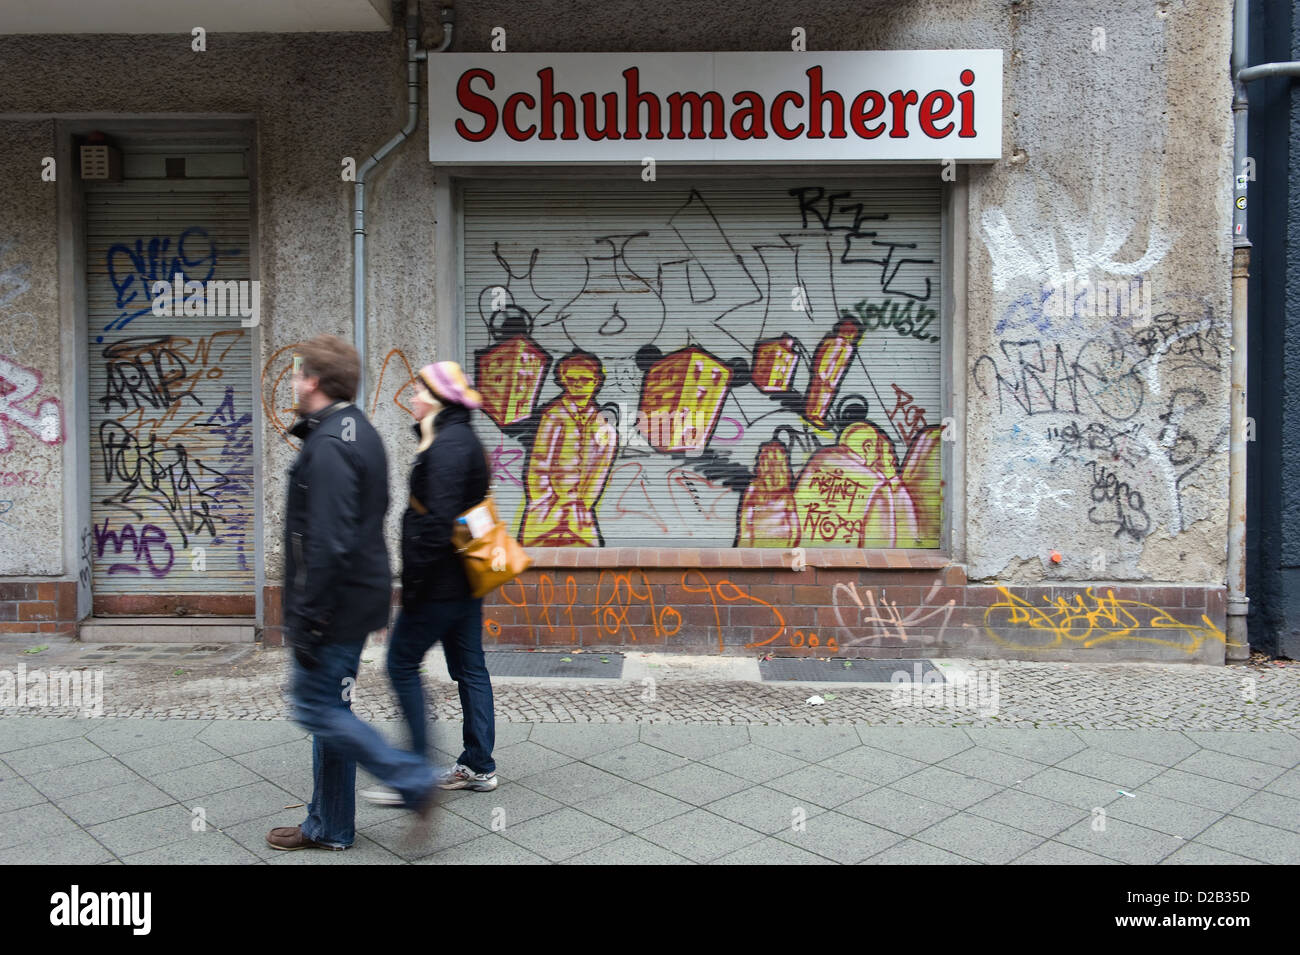 Berlin, Germany, graffiti on a lowered blinds of a shoemaker - Stock Image